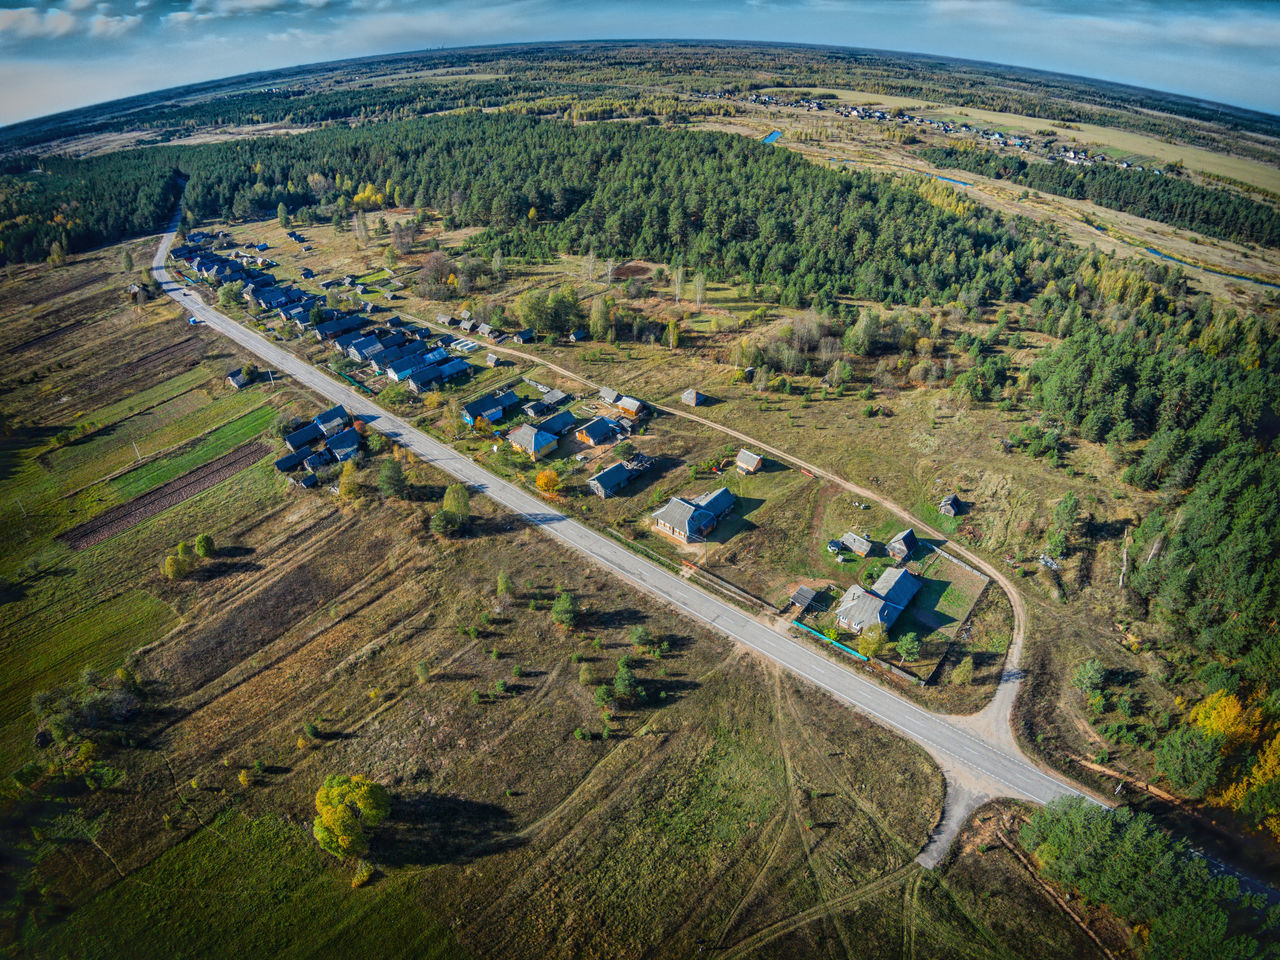 Village along the road. Maksatikhinsky District. One of the many villages Maksatihinsky district of Tver region. Aerial Shot Aerial View Beauty In Nature Countryside Day Drone  Dronephotography Farm Field Growth Landscape Nature No People Outdoors Patchwork Landscape Rural Scene Scenics Transportation Tree Village